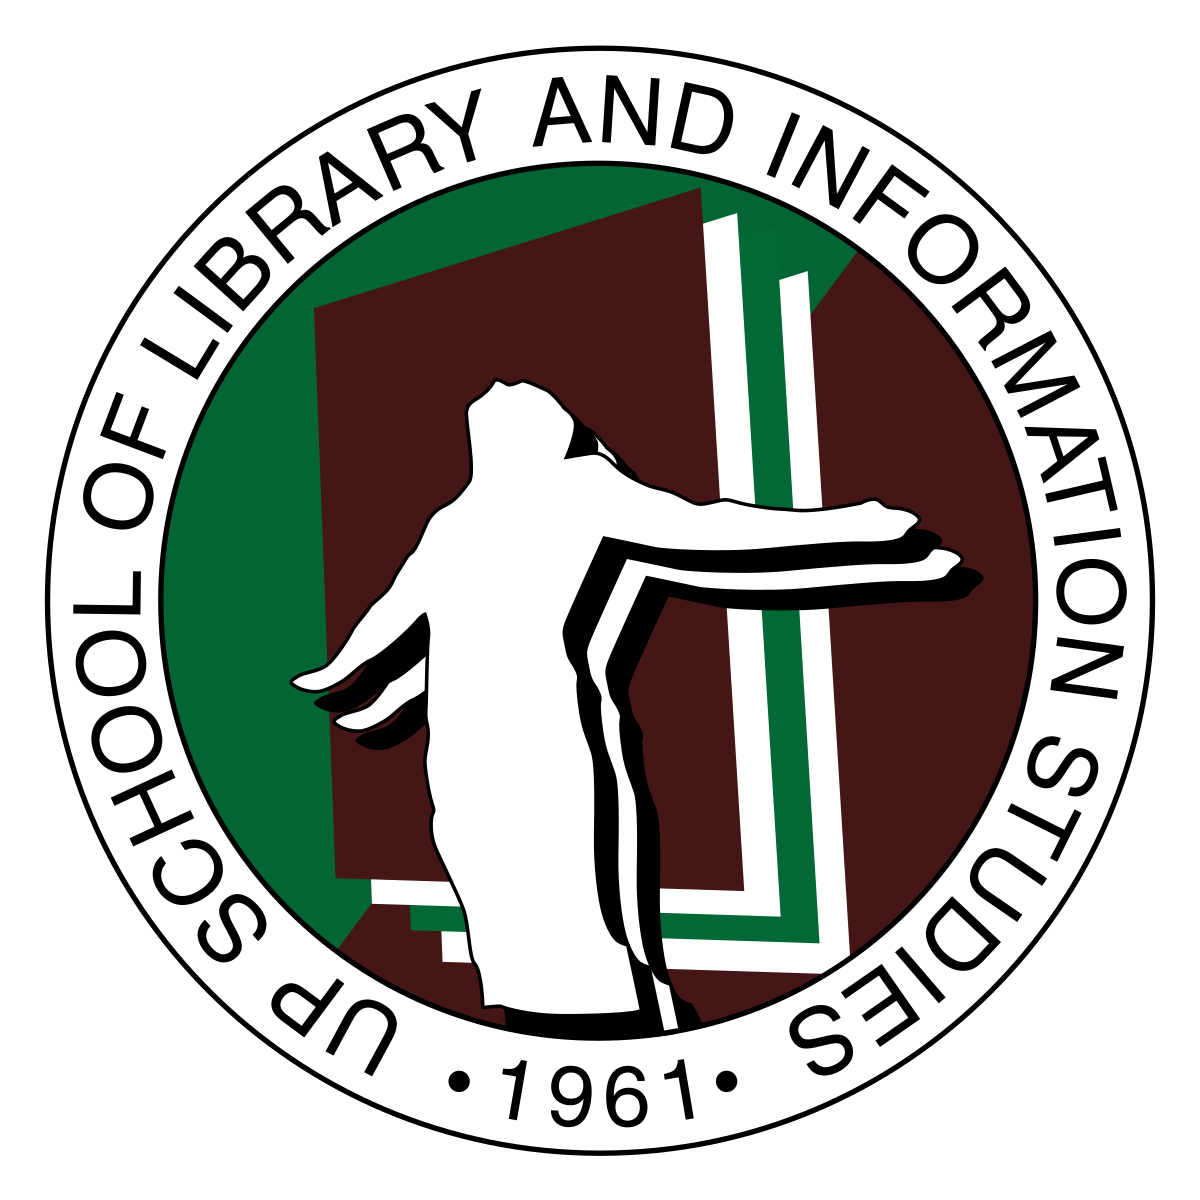 svg royalty free download University of the Philippines School of Library and Information